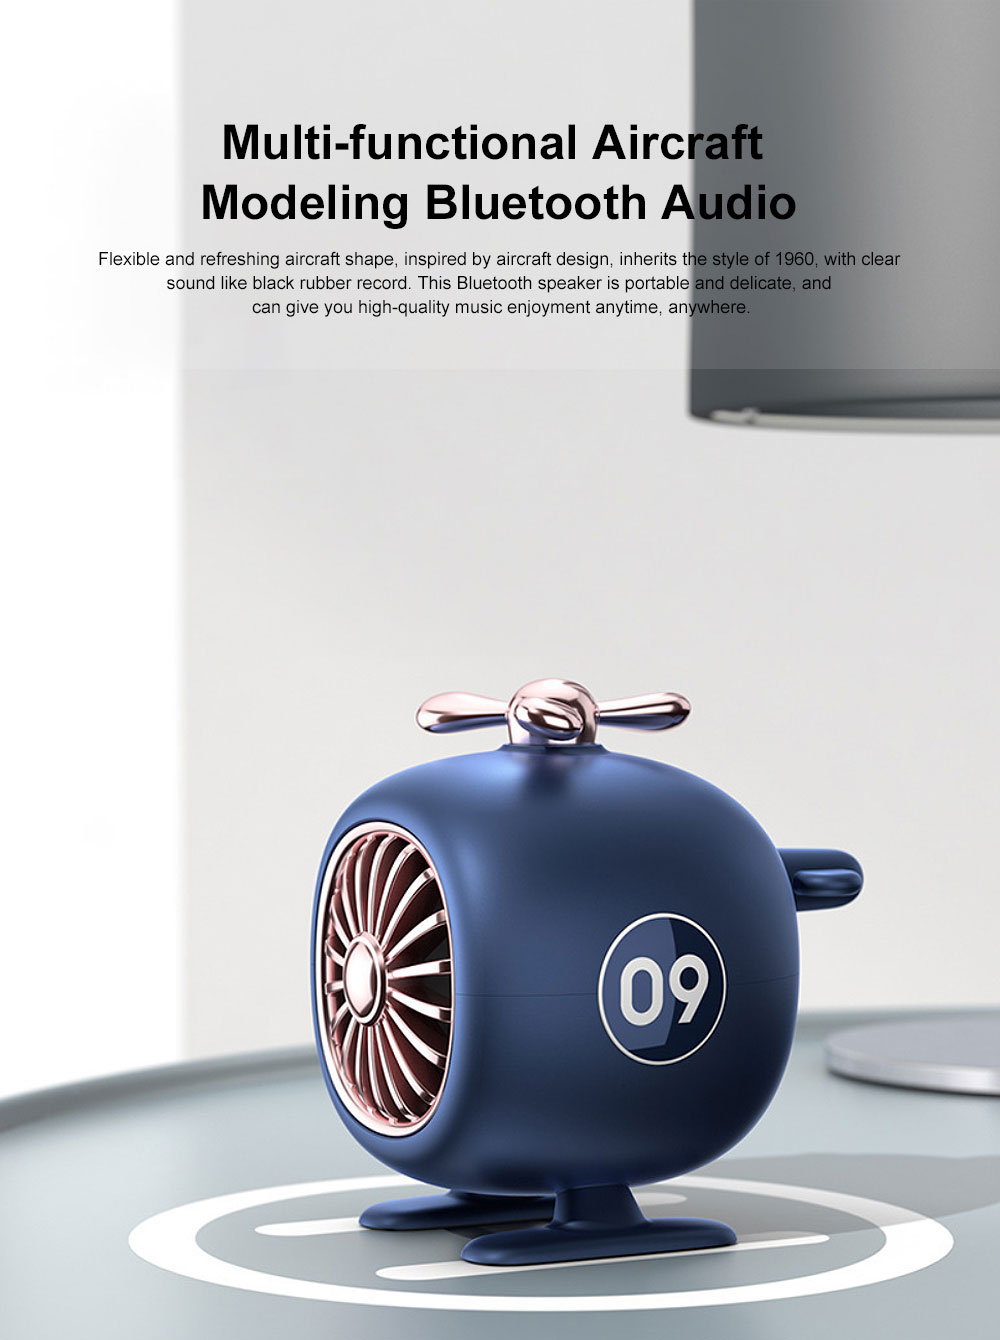 New Multi-functional Aircraft Modeling Bluetooth Audio, Mini Wireless Portable Creative Audio, Individualized BT 5.0 Speaker Hands Free Call Knob Wireless Control 0